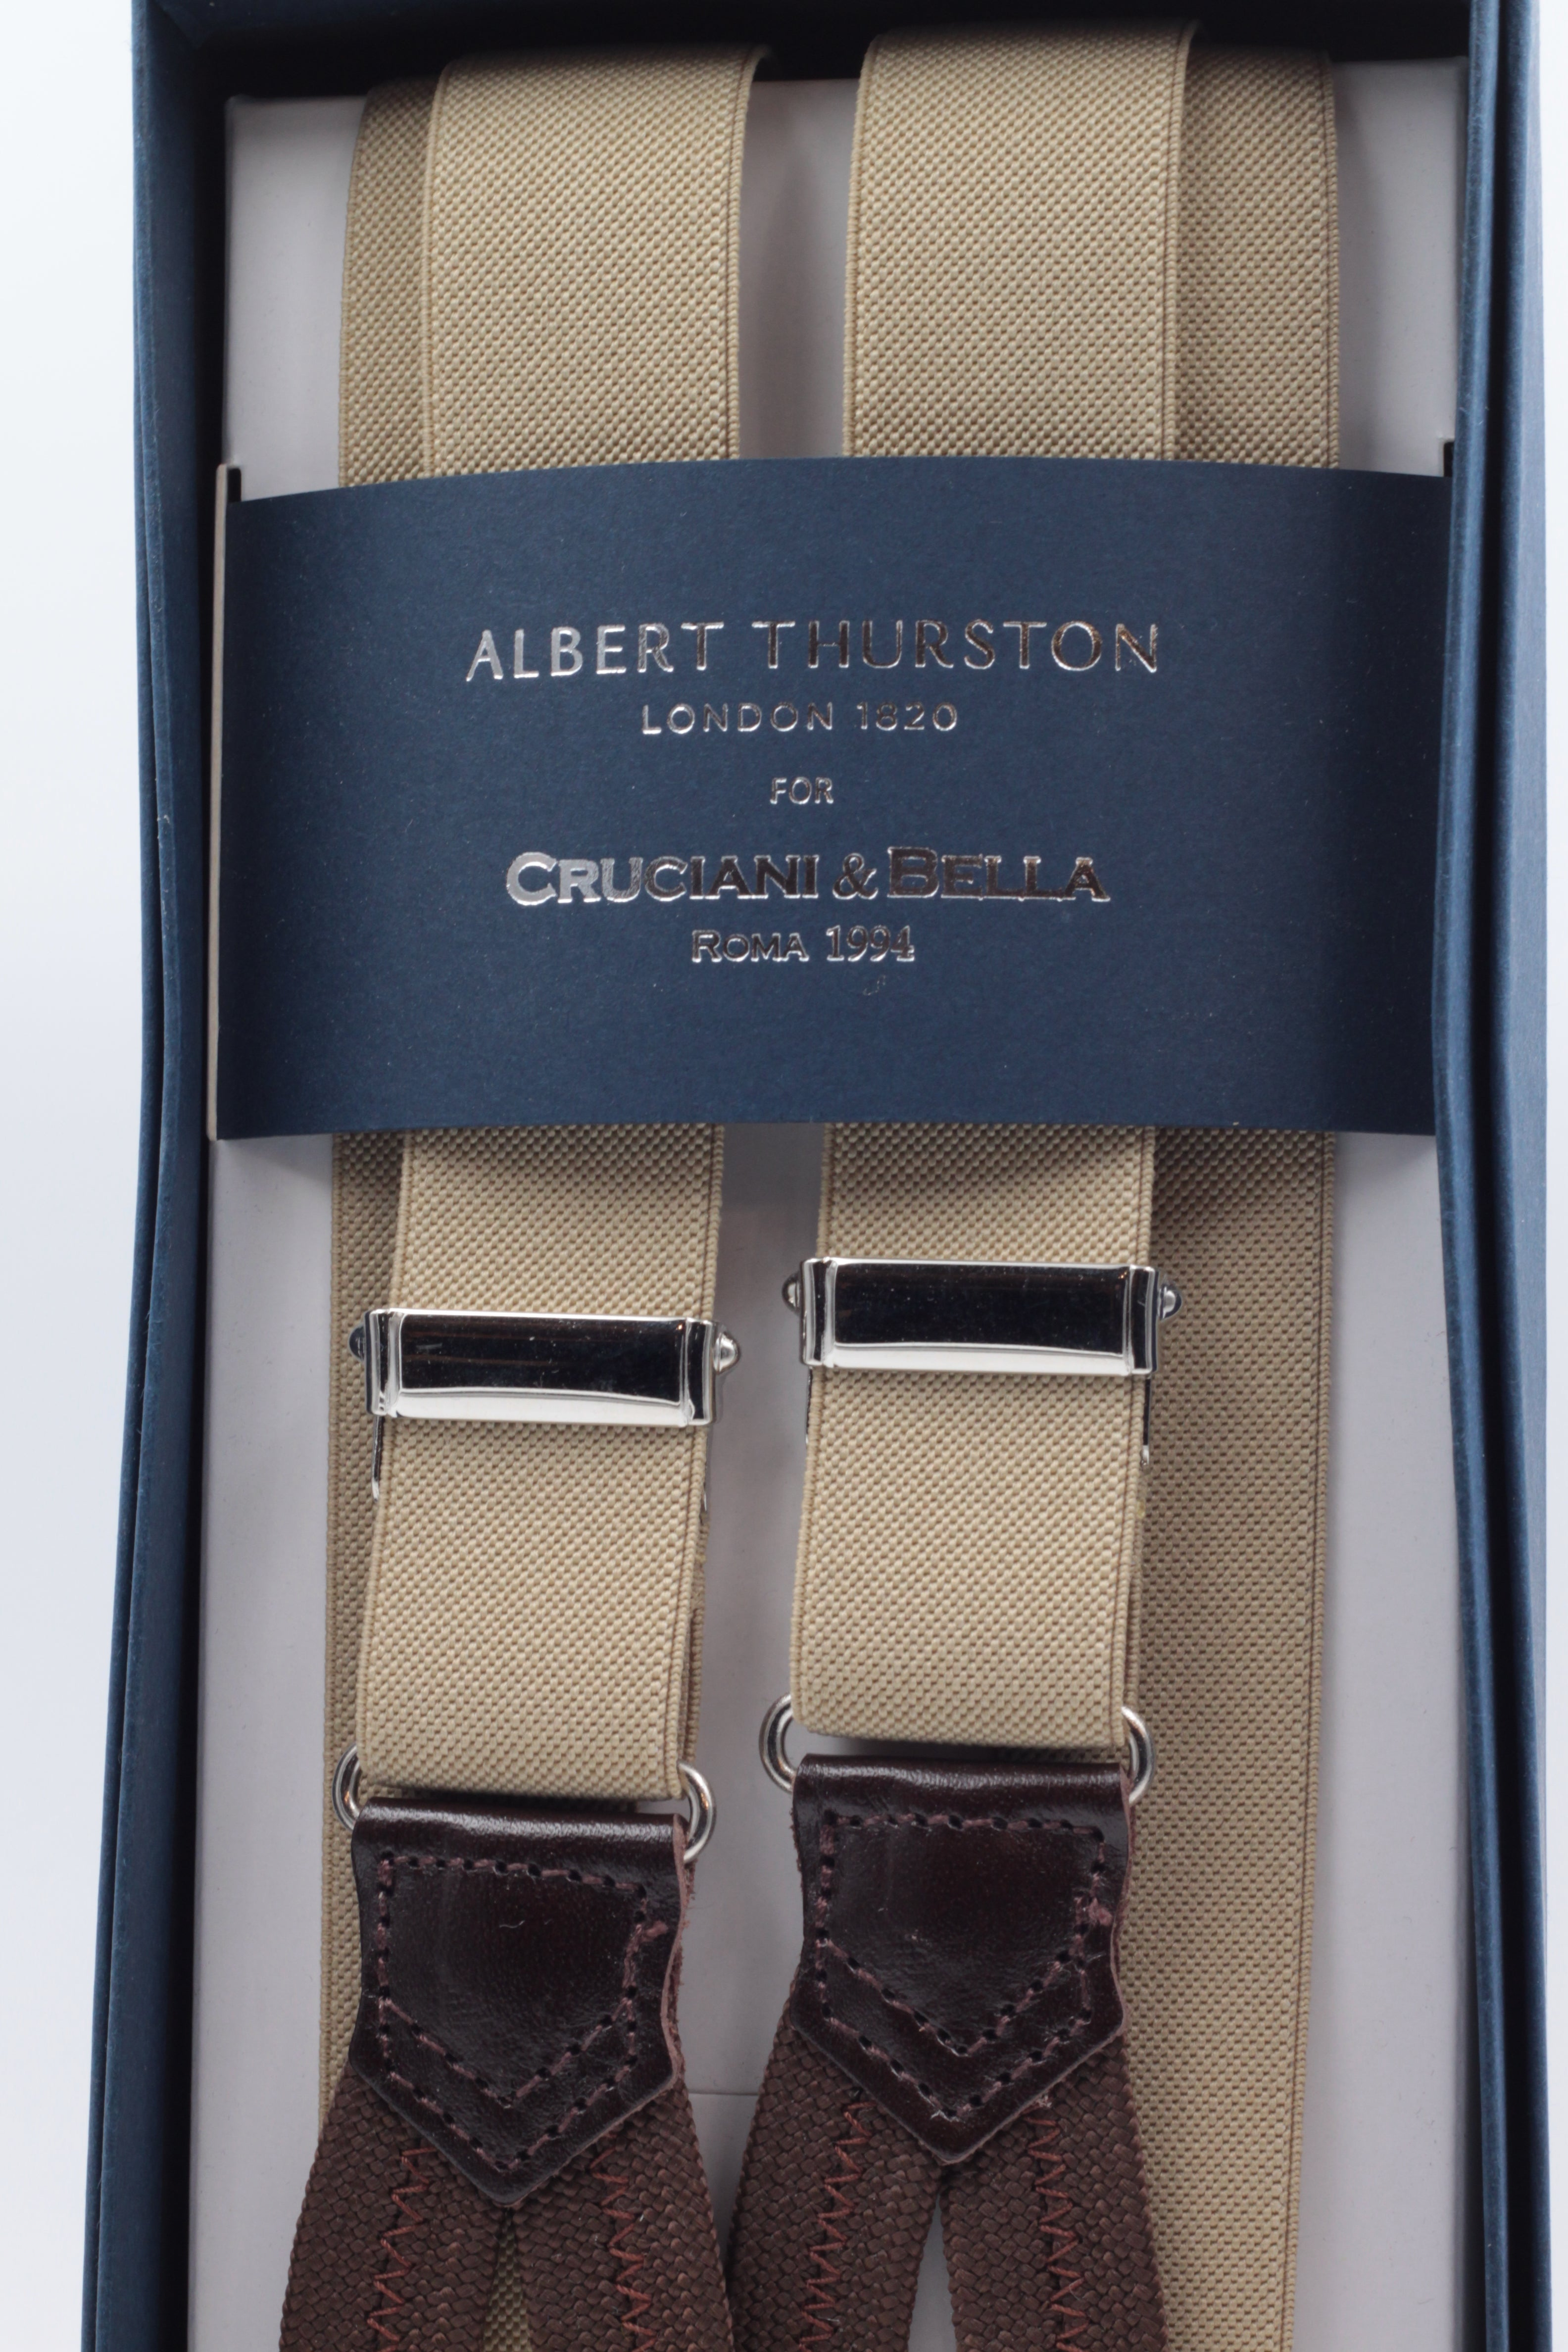 Albert Thurston for Cruciani & Bella Made in England Adjustable Sizing 25 mm elastic braces Beige plain Braid ends Y-Shaped Nickel Fittings Size: L